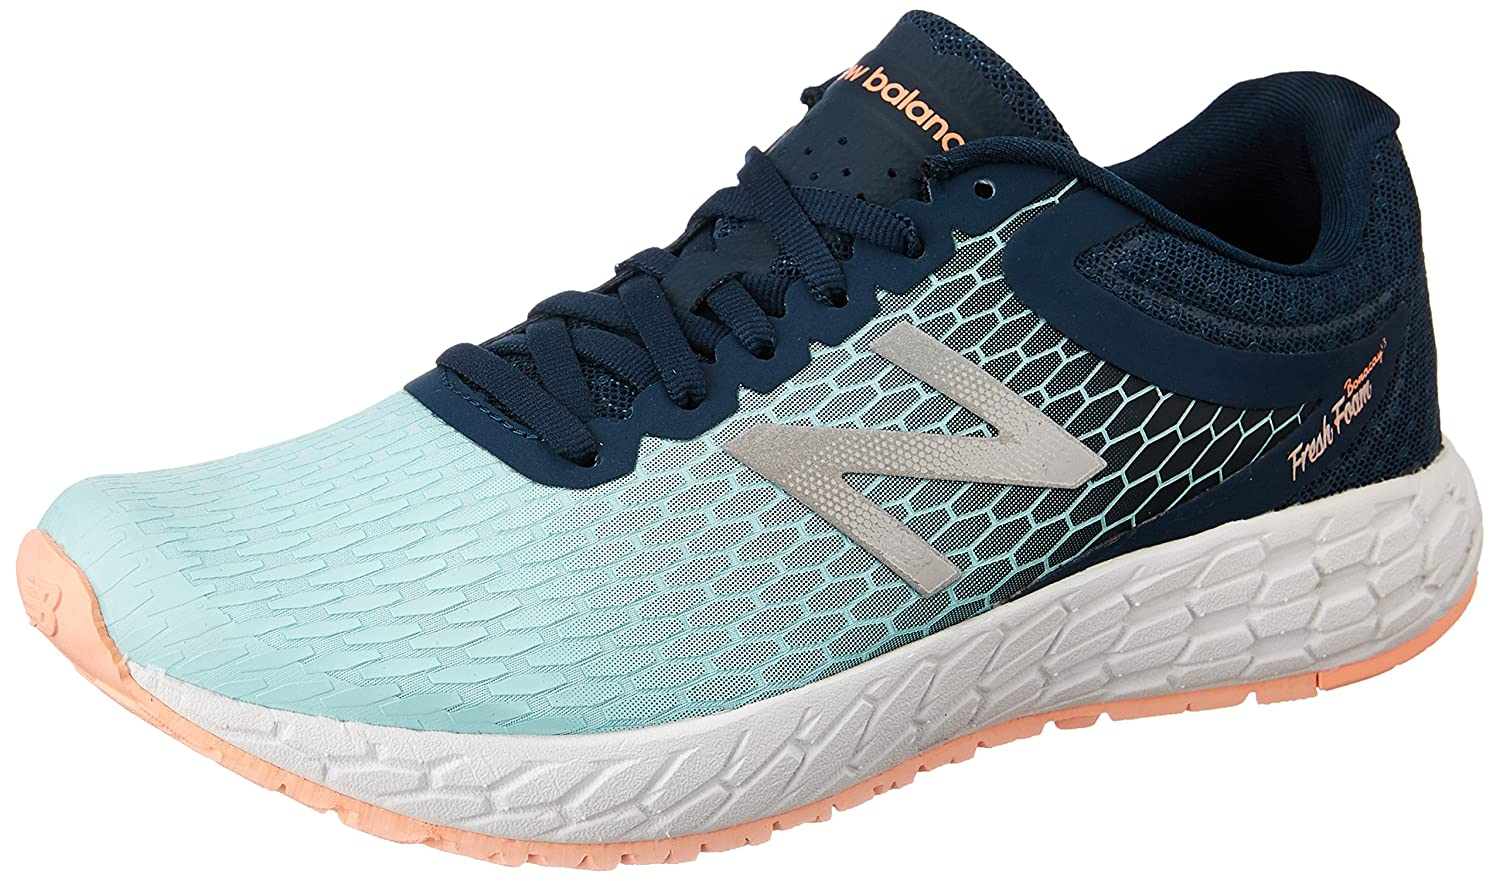 New Balance Women's Boracay V3 Running Shoe B01FSIZCOM 5 B(M) US|Supercell/Ozone Blue/Bleached Sunrise